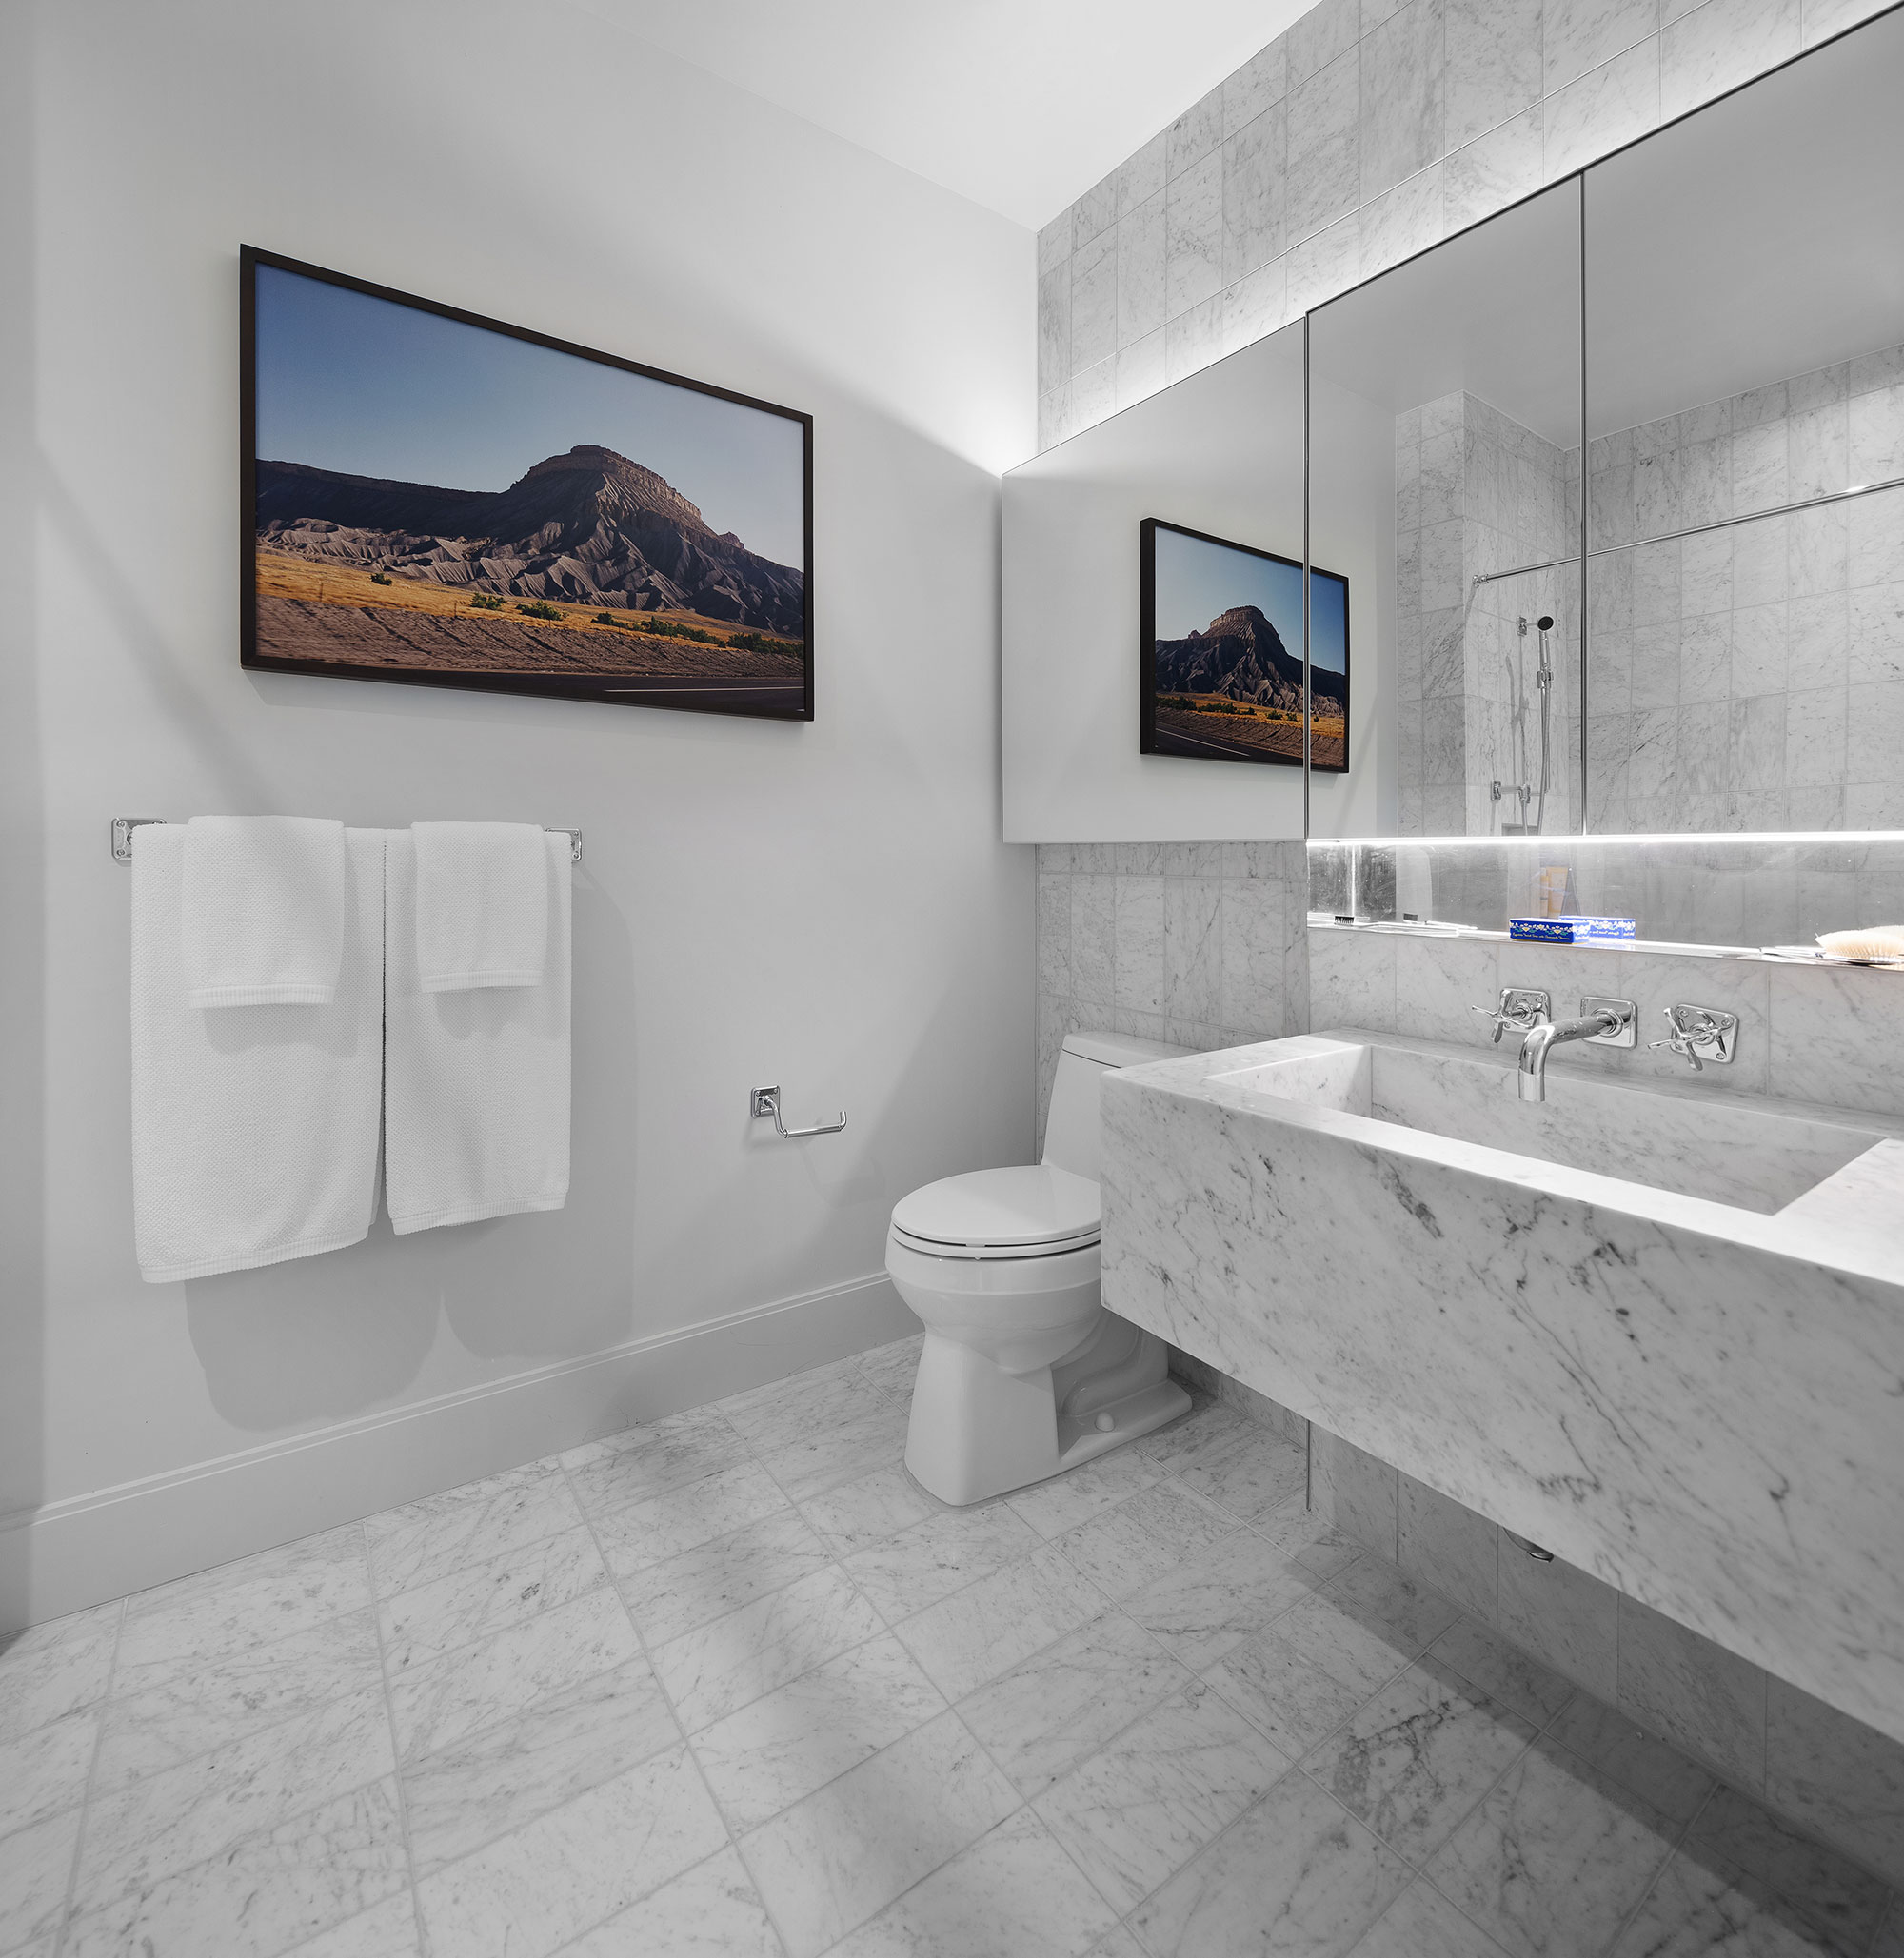 Marble Powder Room Townhouse ofThe Bath Haus Interior Design by Meshberg Group